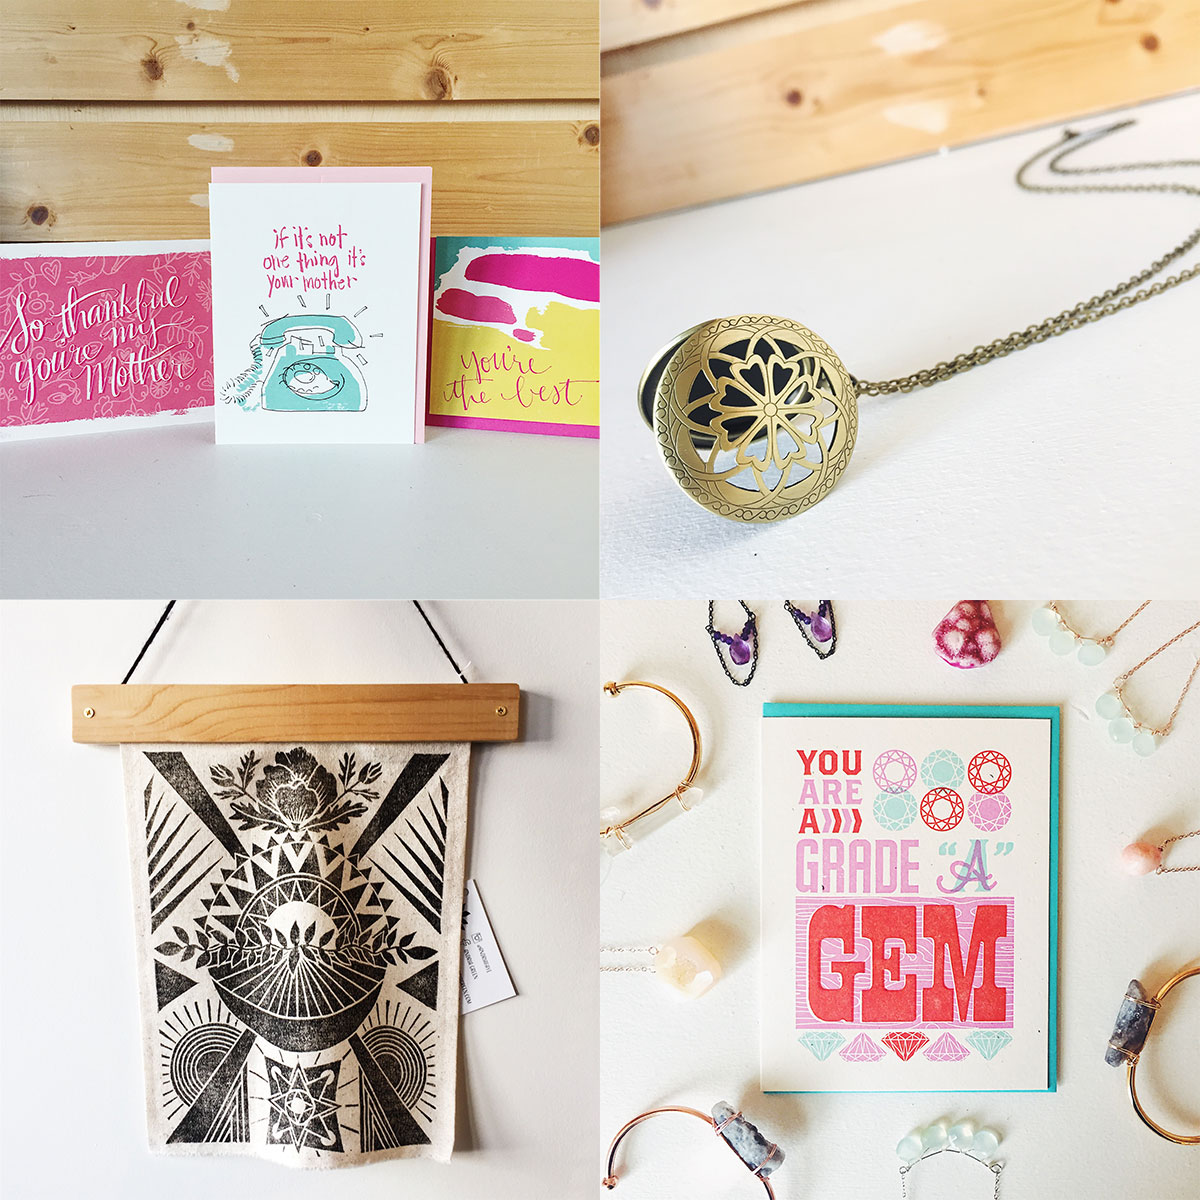 ICYMI May 4 : Handmade Mother's Day gift ideas at Homespun: Modern Handmade